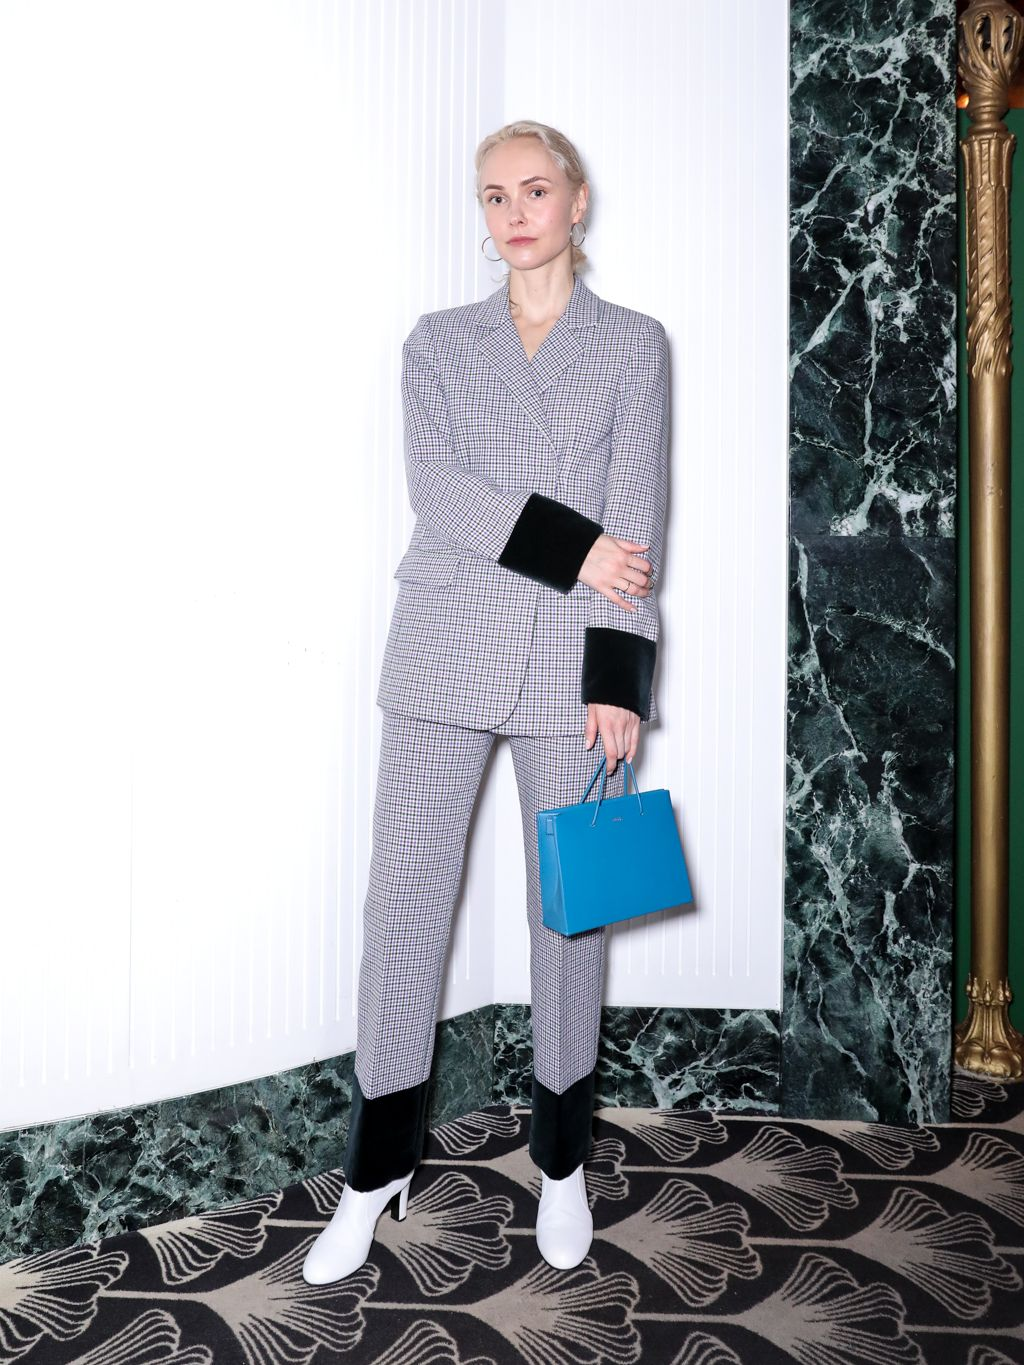 Olga Karput Olga Karput along with DJ Peggy Gou celebrated the launch of her first Kirin collection with a special dinner at Beefbar in Paris on February 26.